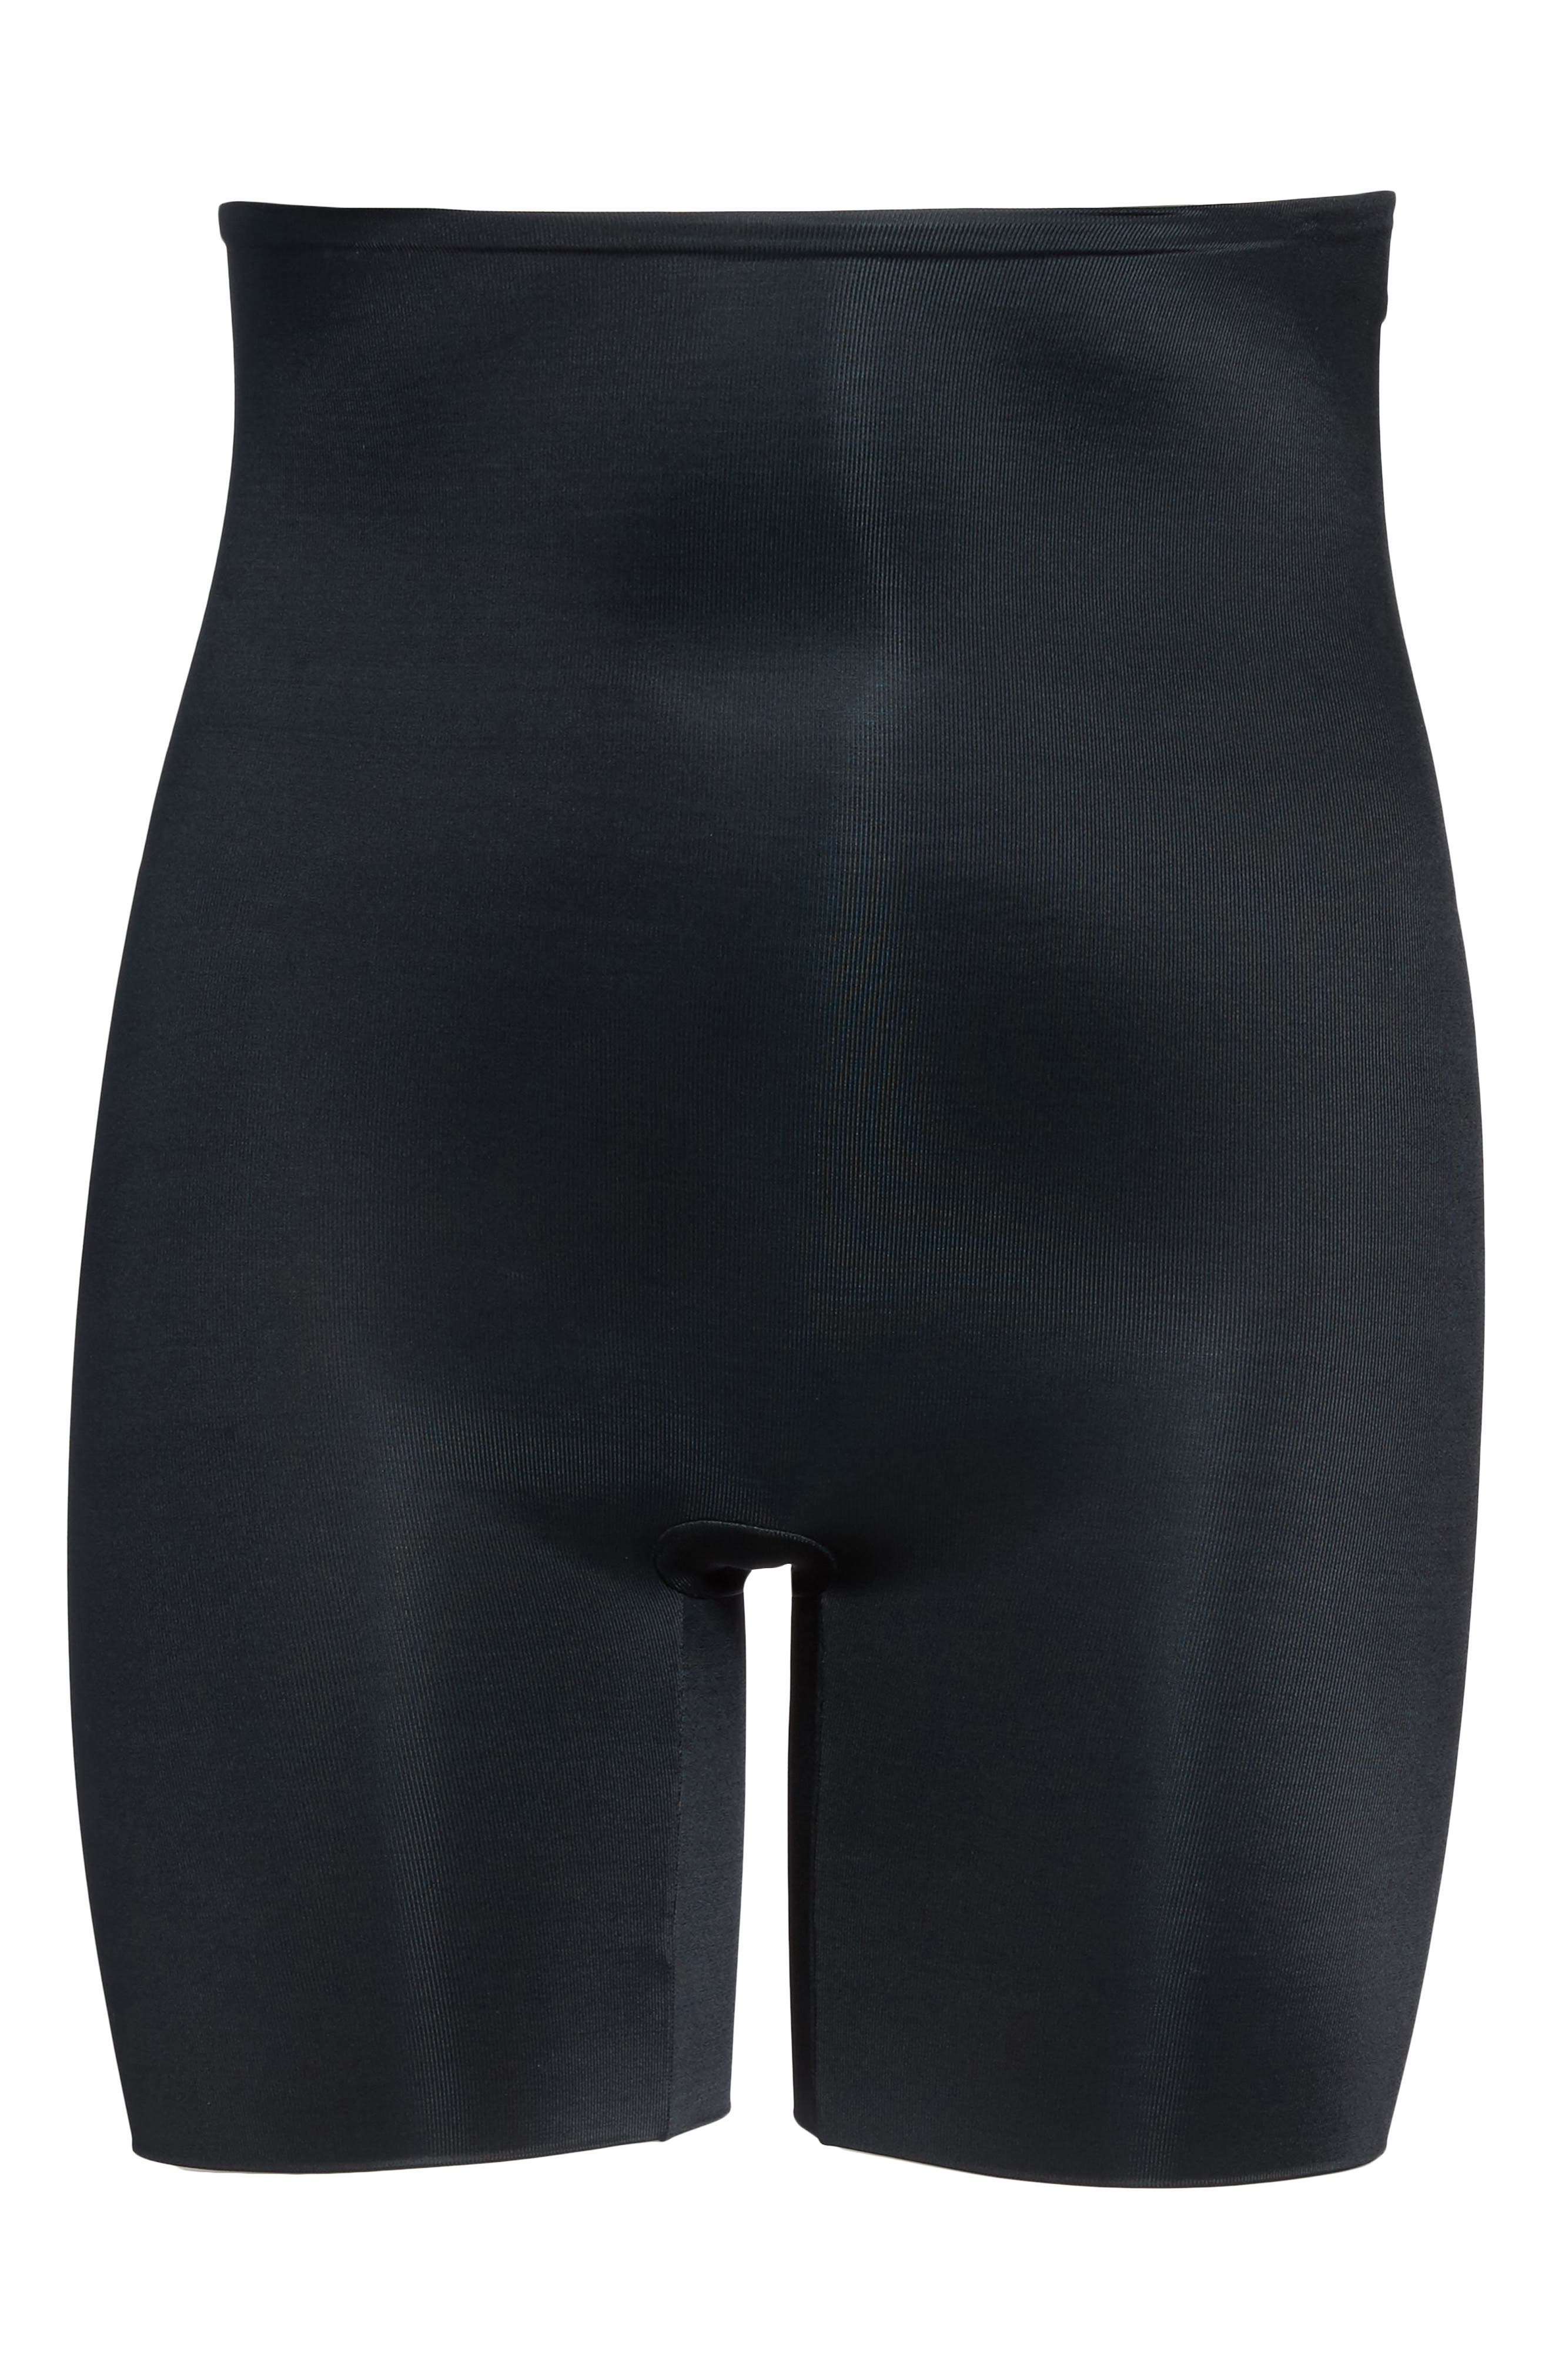 Power Conceal-Her High Waist Shaping Shorts,                             Alternate thumbnail 5, color,                             VERY BLACK